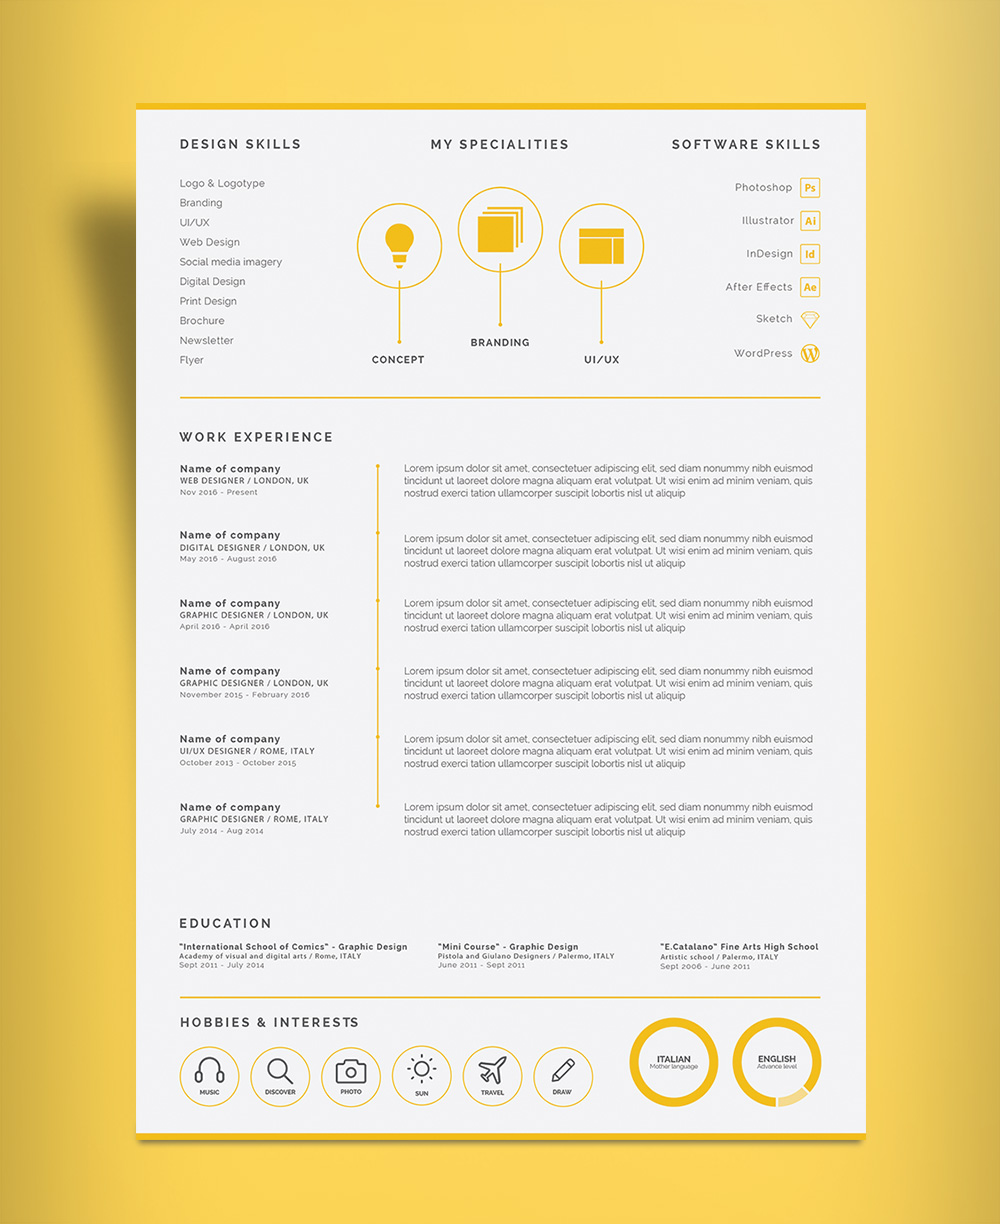 Free professional 2 page resume design cv template ai file good free professional 2 page resume design cv template ai file thecheapjerseys Images